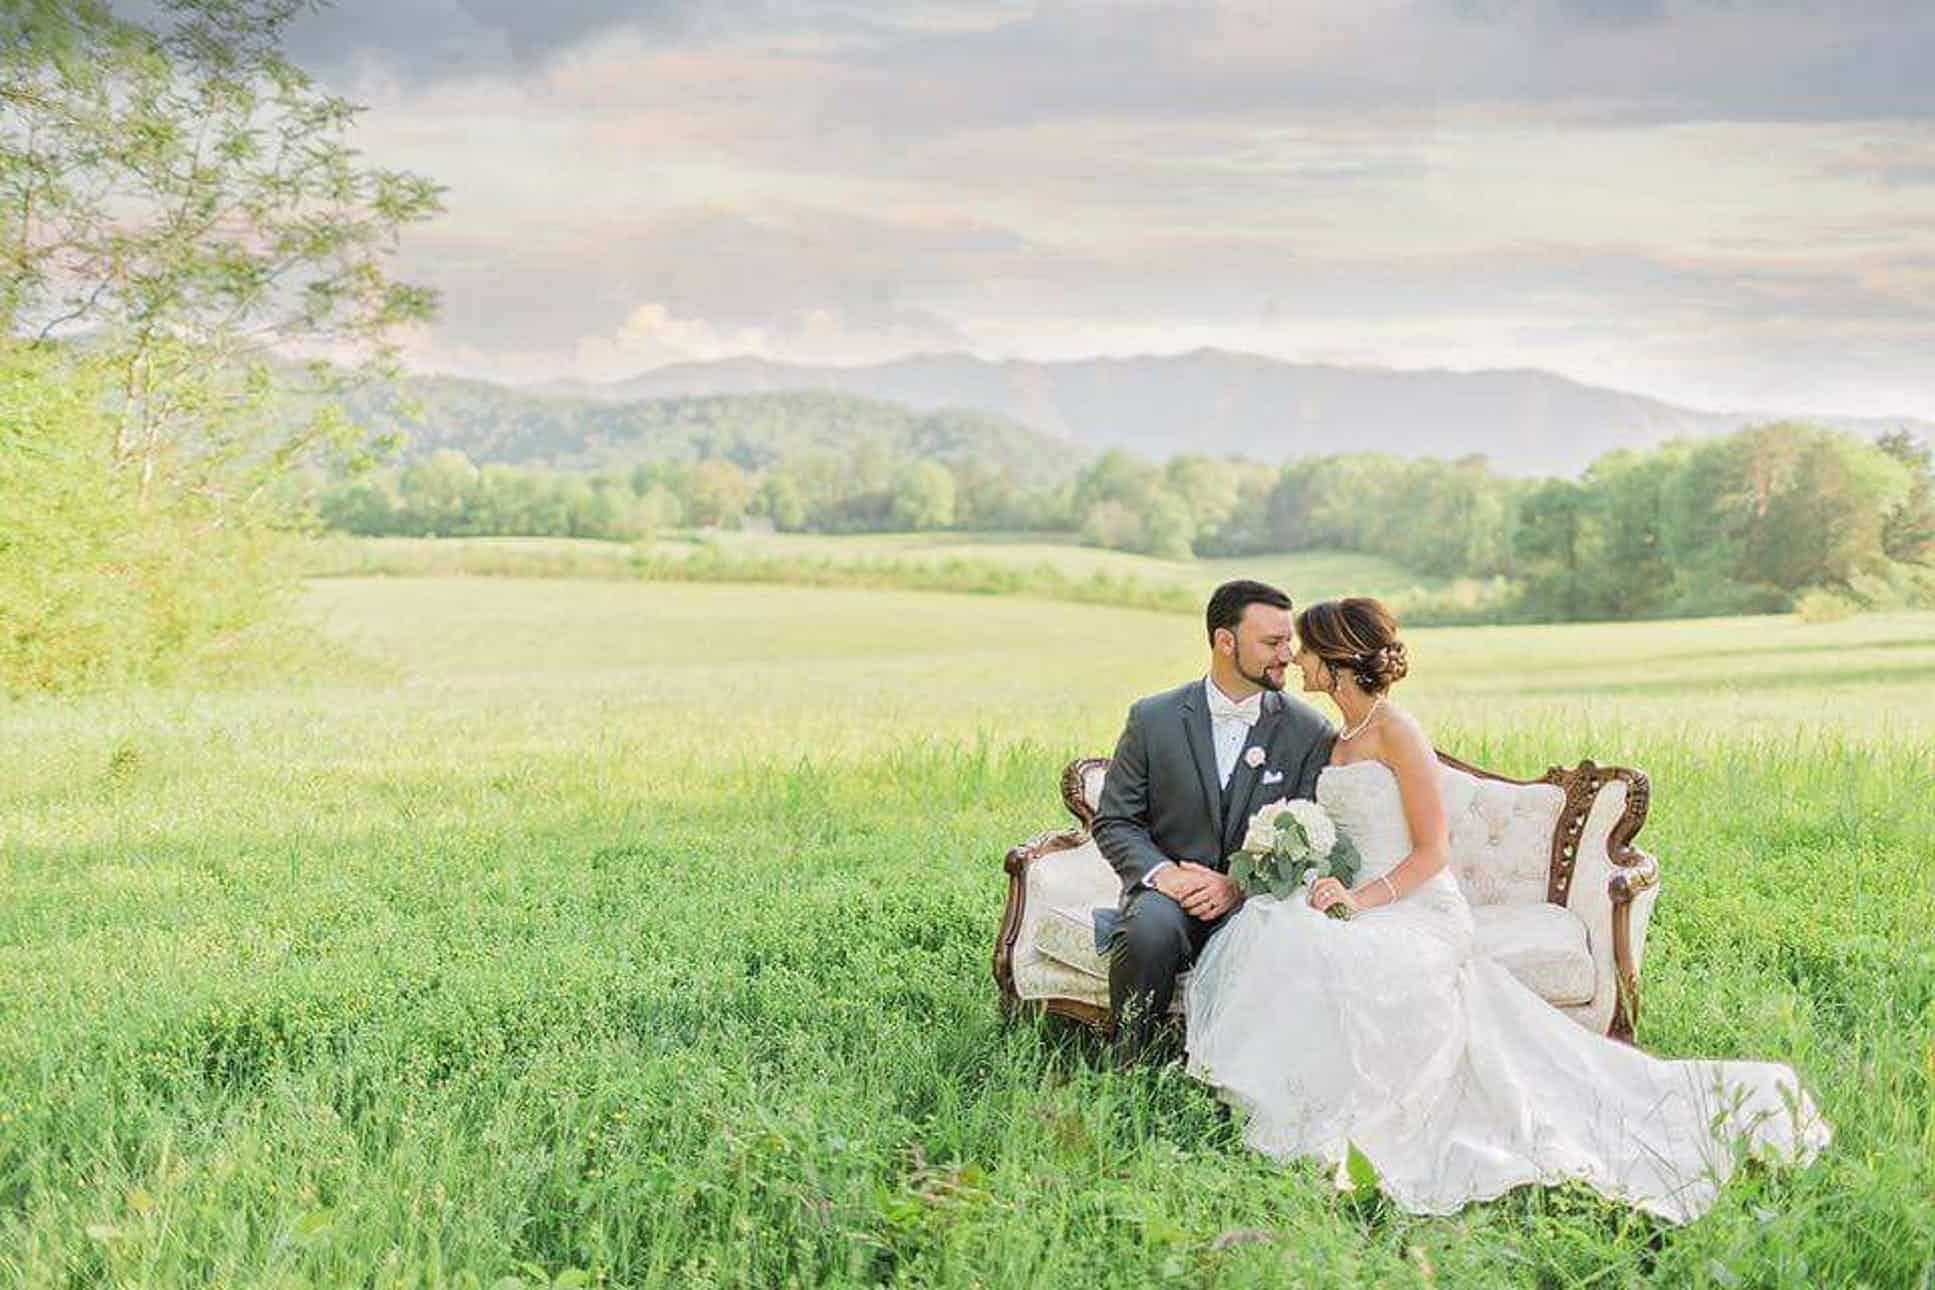 Tennessee Wedding Venues On A Budget Affordable Tennessee Wedding